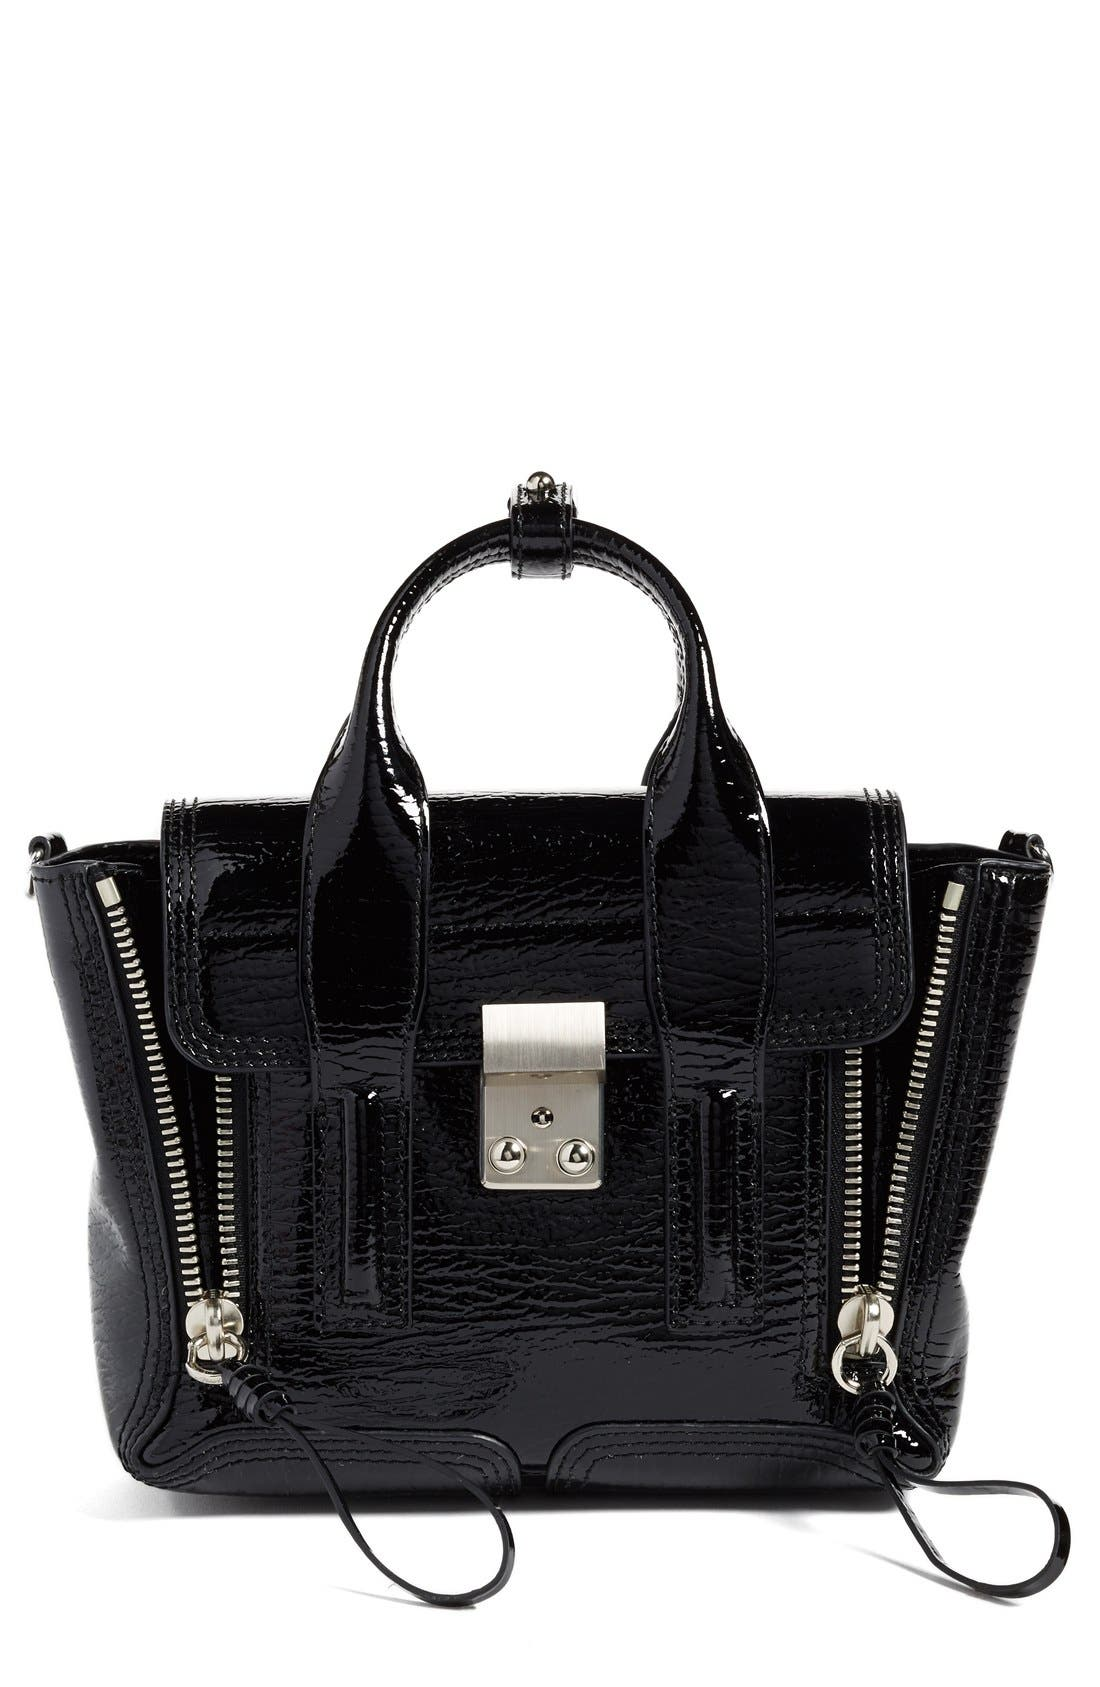 3.1 PHILLIP LIM Mini Pashli Shark Embossed Leather Satchel